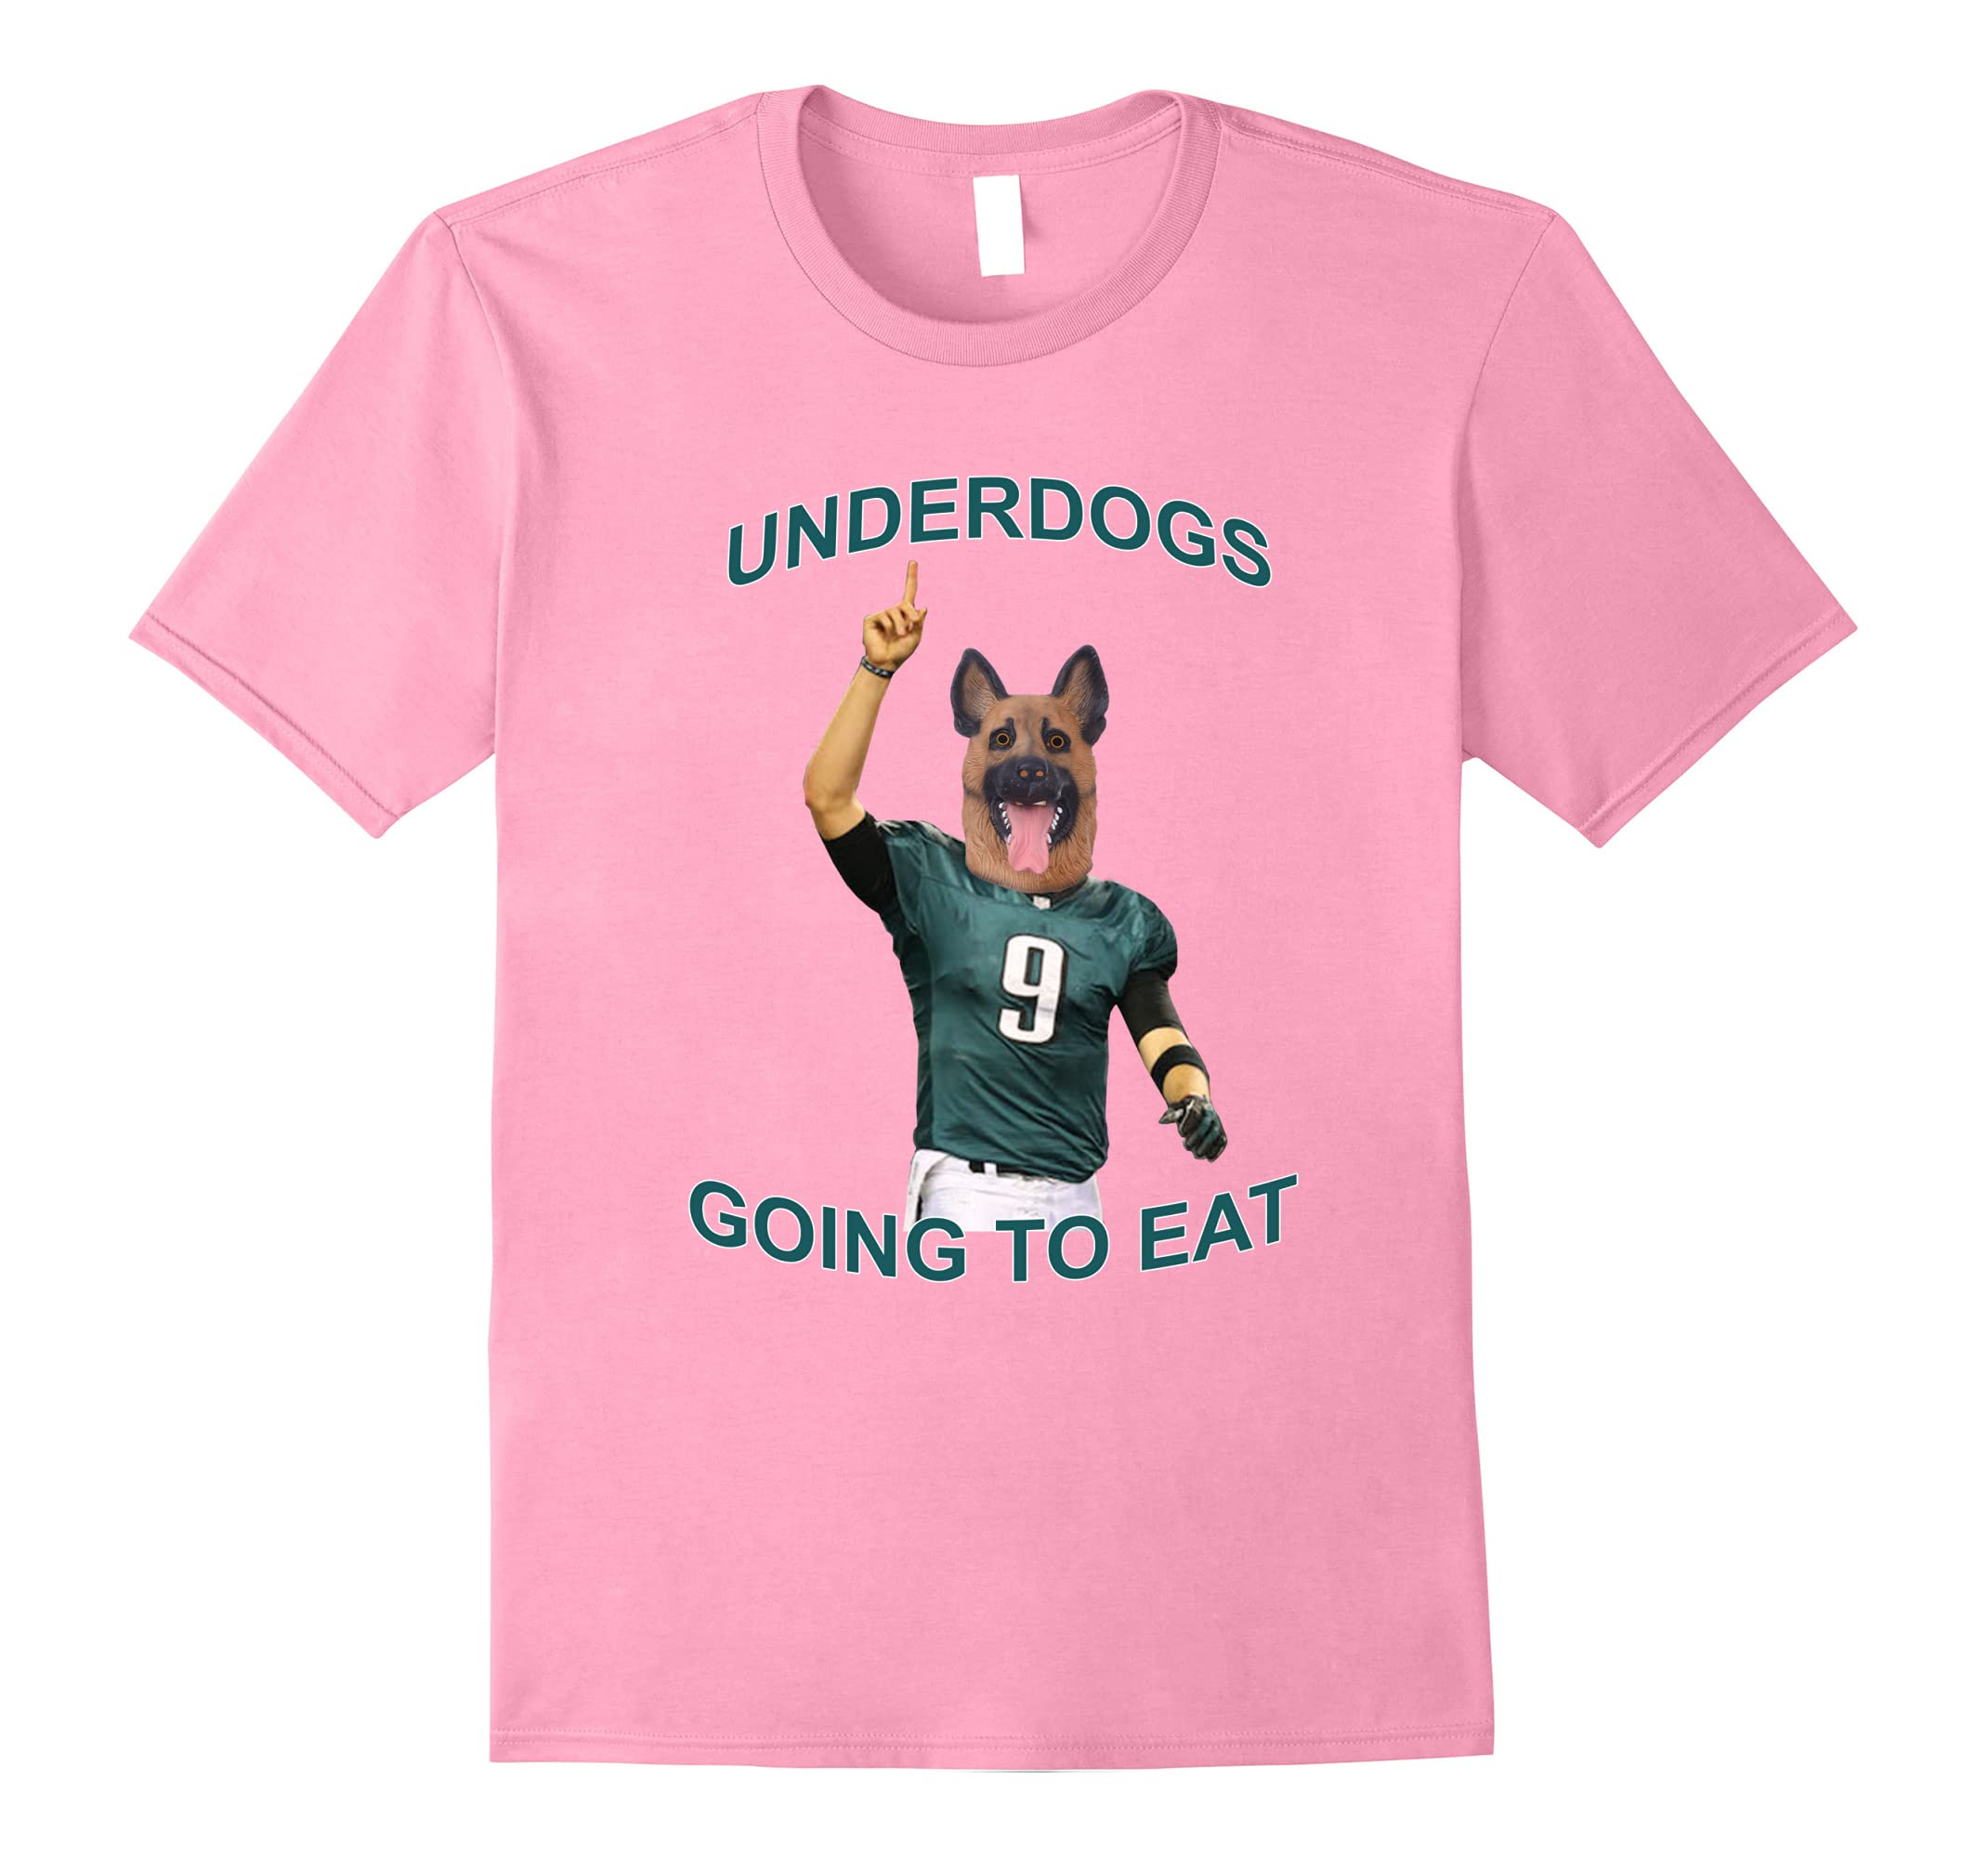 Underdogs Going To Eat Football #9 Shirt-ah my shirt one gift